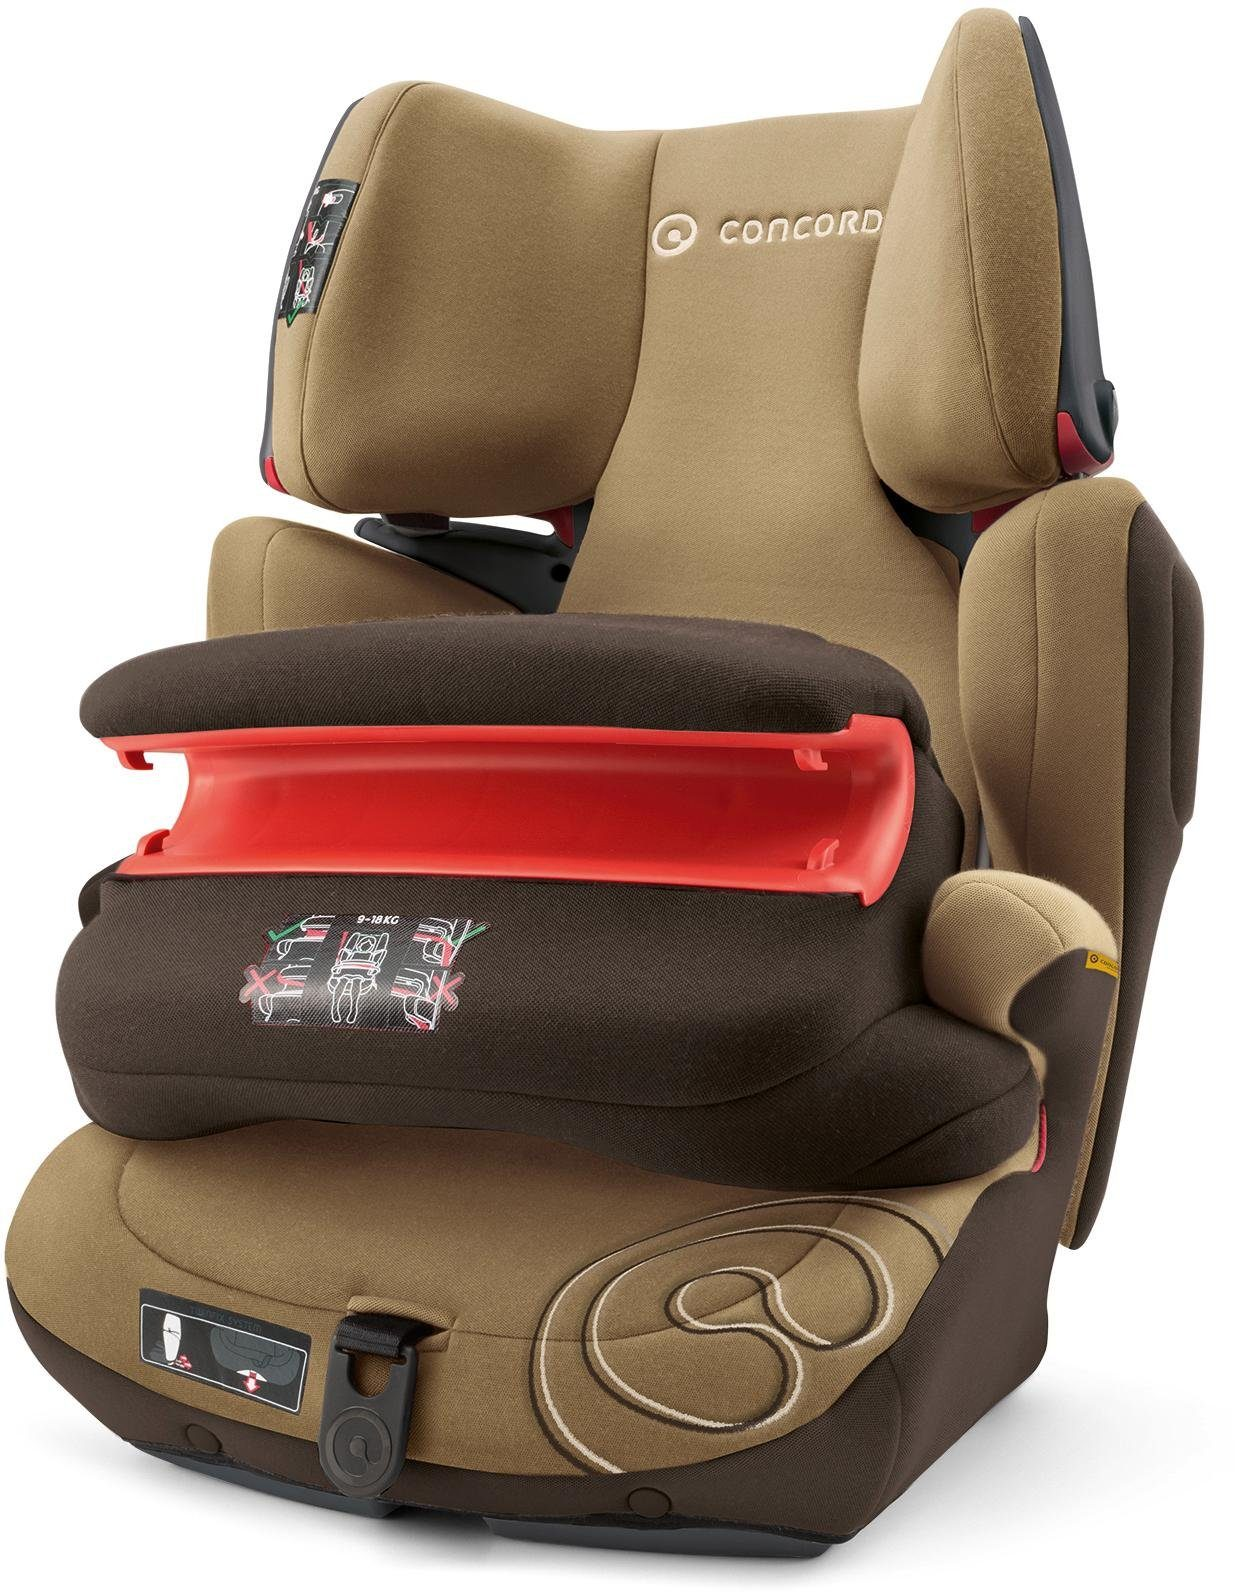 Concord Kindersitz, 9-36 kg, »Transformer Pro, Walnut Brown«